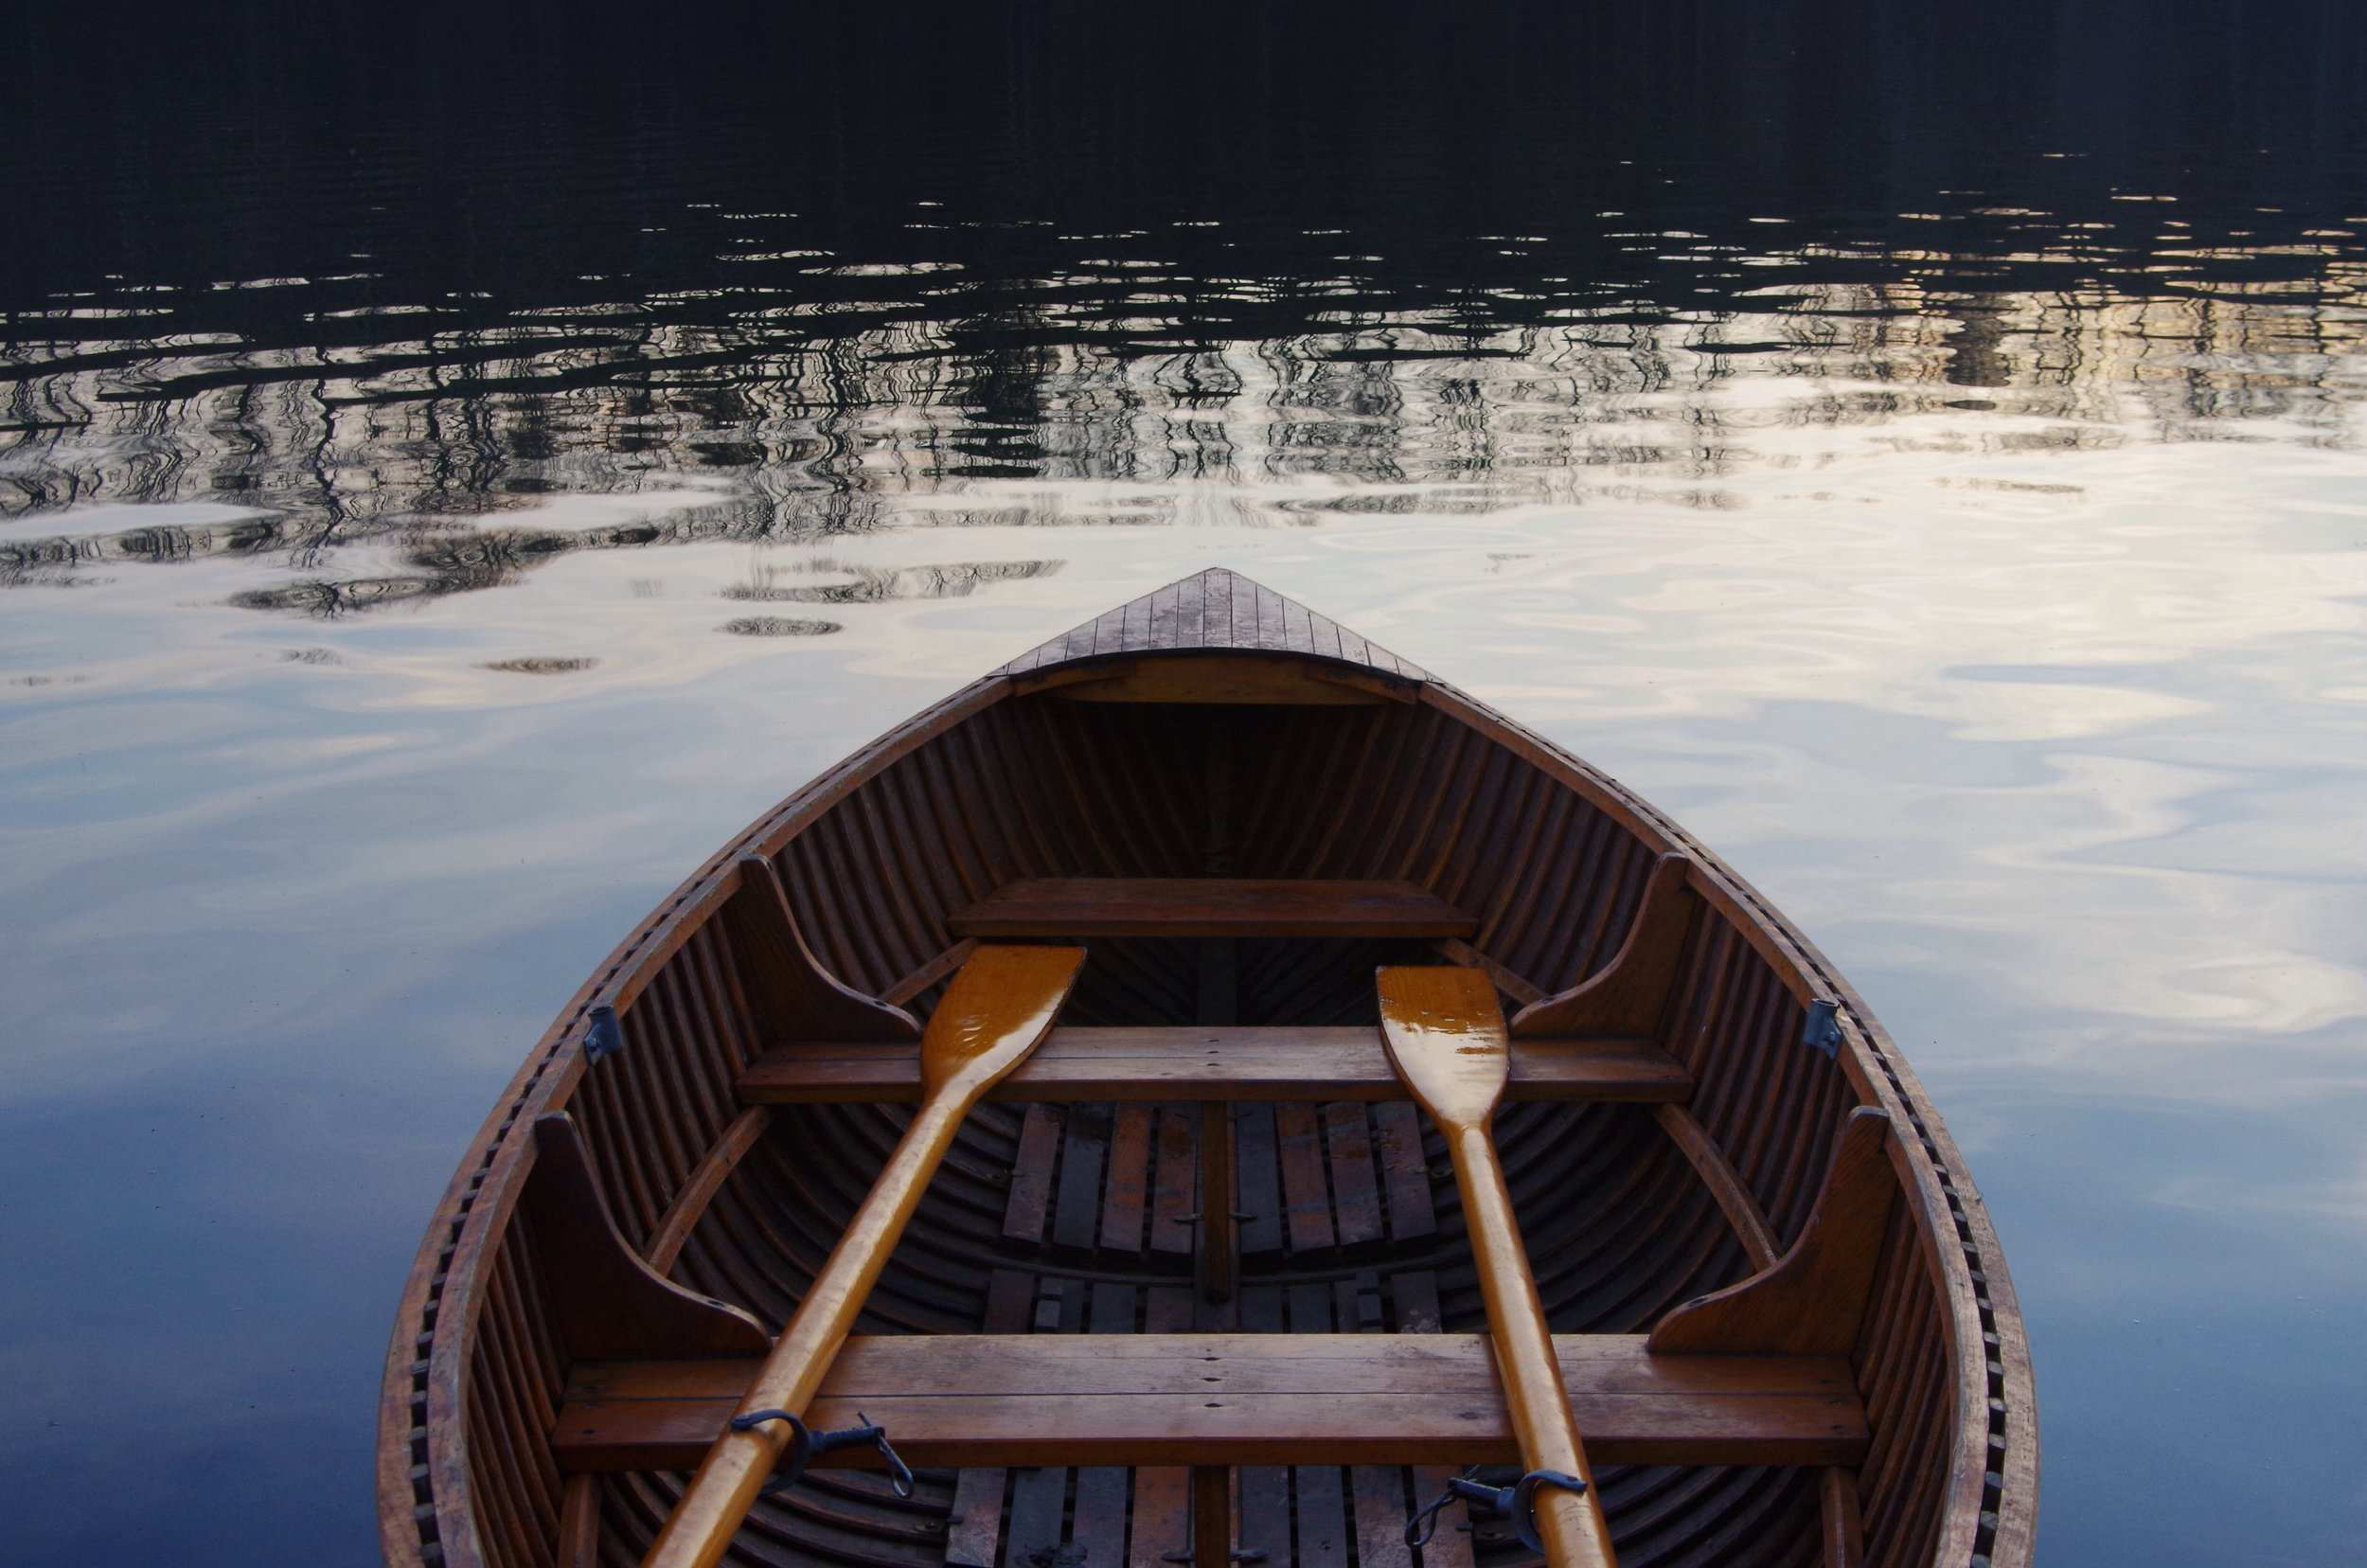 True followers of Jesus get in the boat even knowing the storms will come.